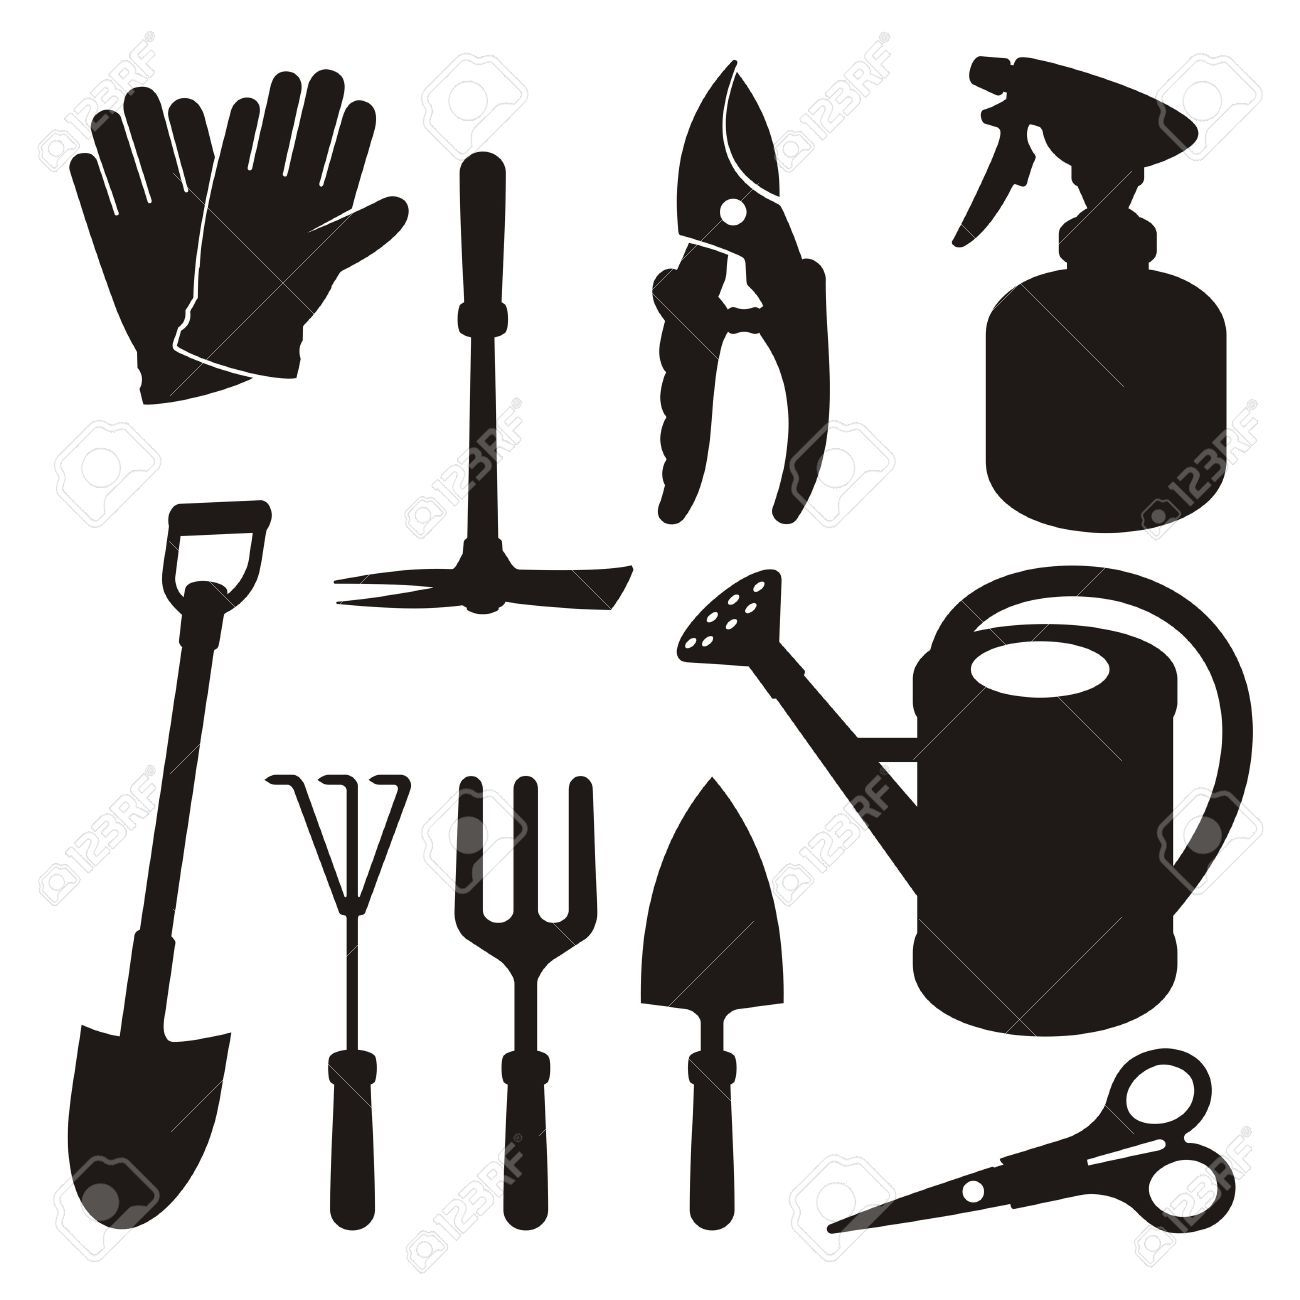 Clipart Ustensiles De Cuisine Unique Photos Gardening tools Stock Illustrations Cliparts and Royalty Free